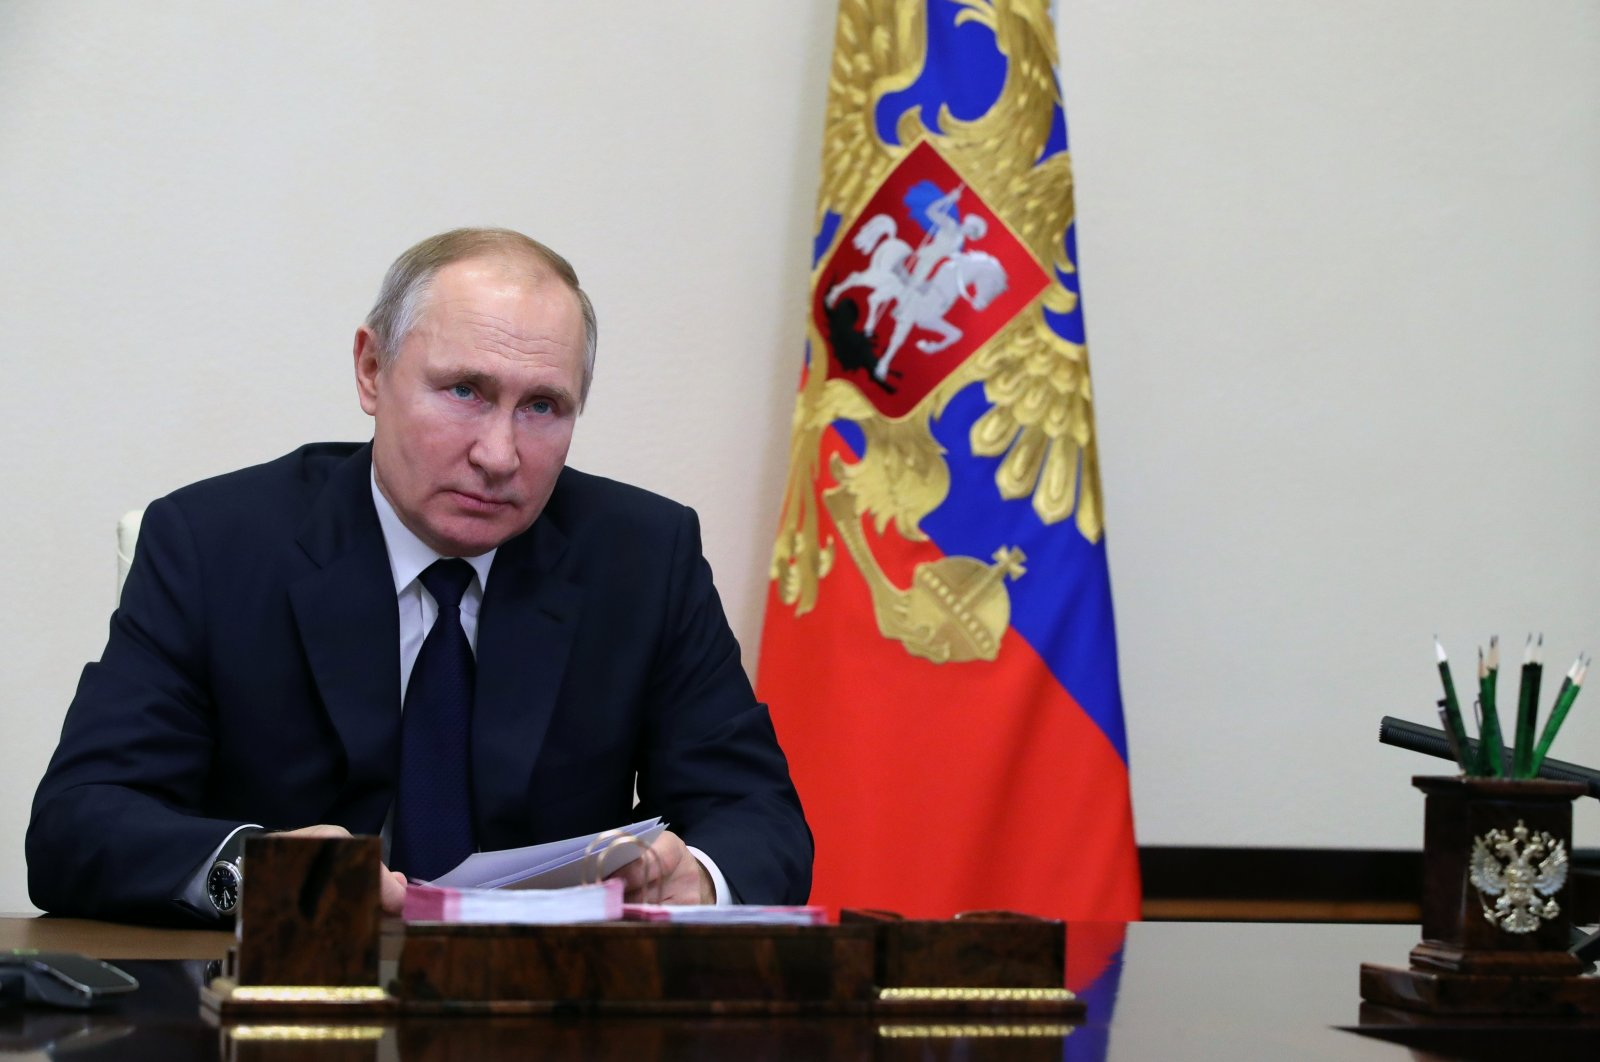 Russian President Vladimir Putin attends a meeting with leaders of the state Duma, the lower house of the Russian parliament factions via videoconference at the Novo-Ogaryovo outside Moscow, Russia, Feb. 17, 2021. (AP Photo)